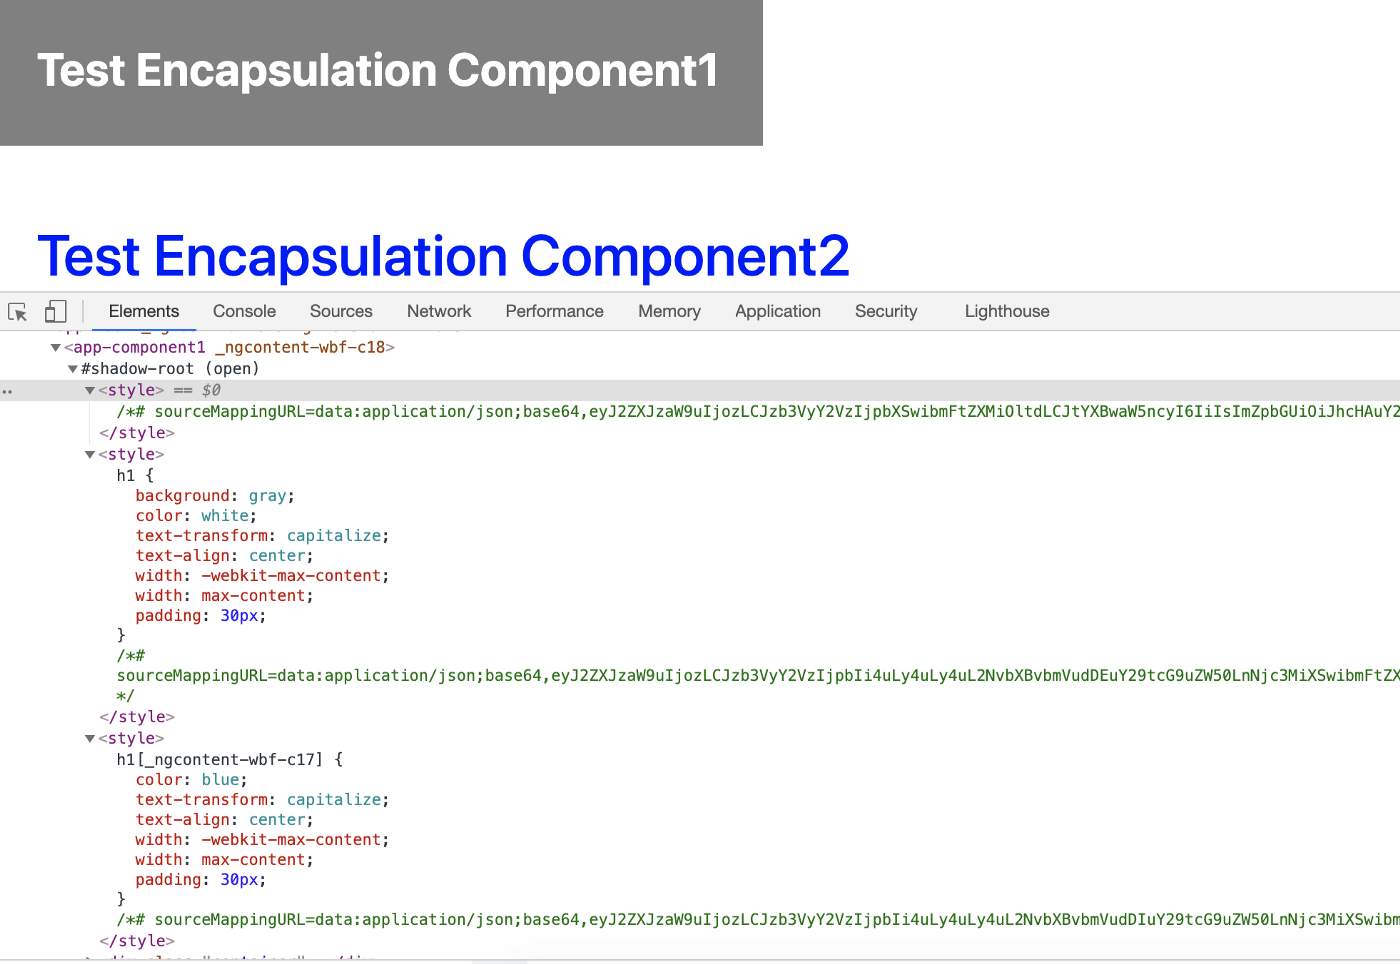 ViewEncapsulation.ShadowDom, Changes will be scoped to component only. The angular renders the component inside the #shadow root element